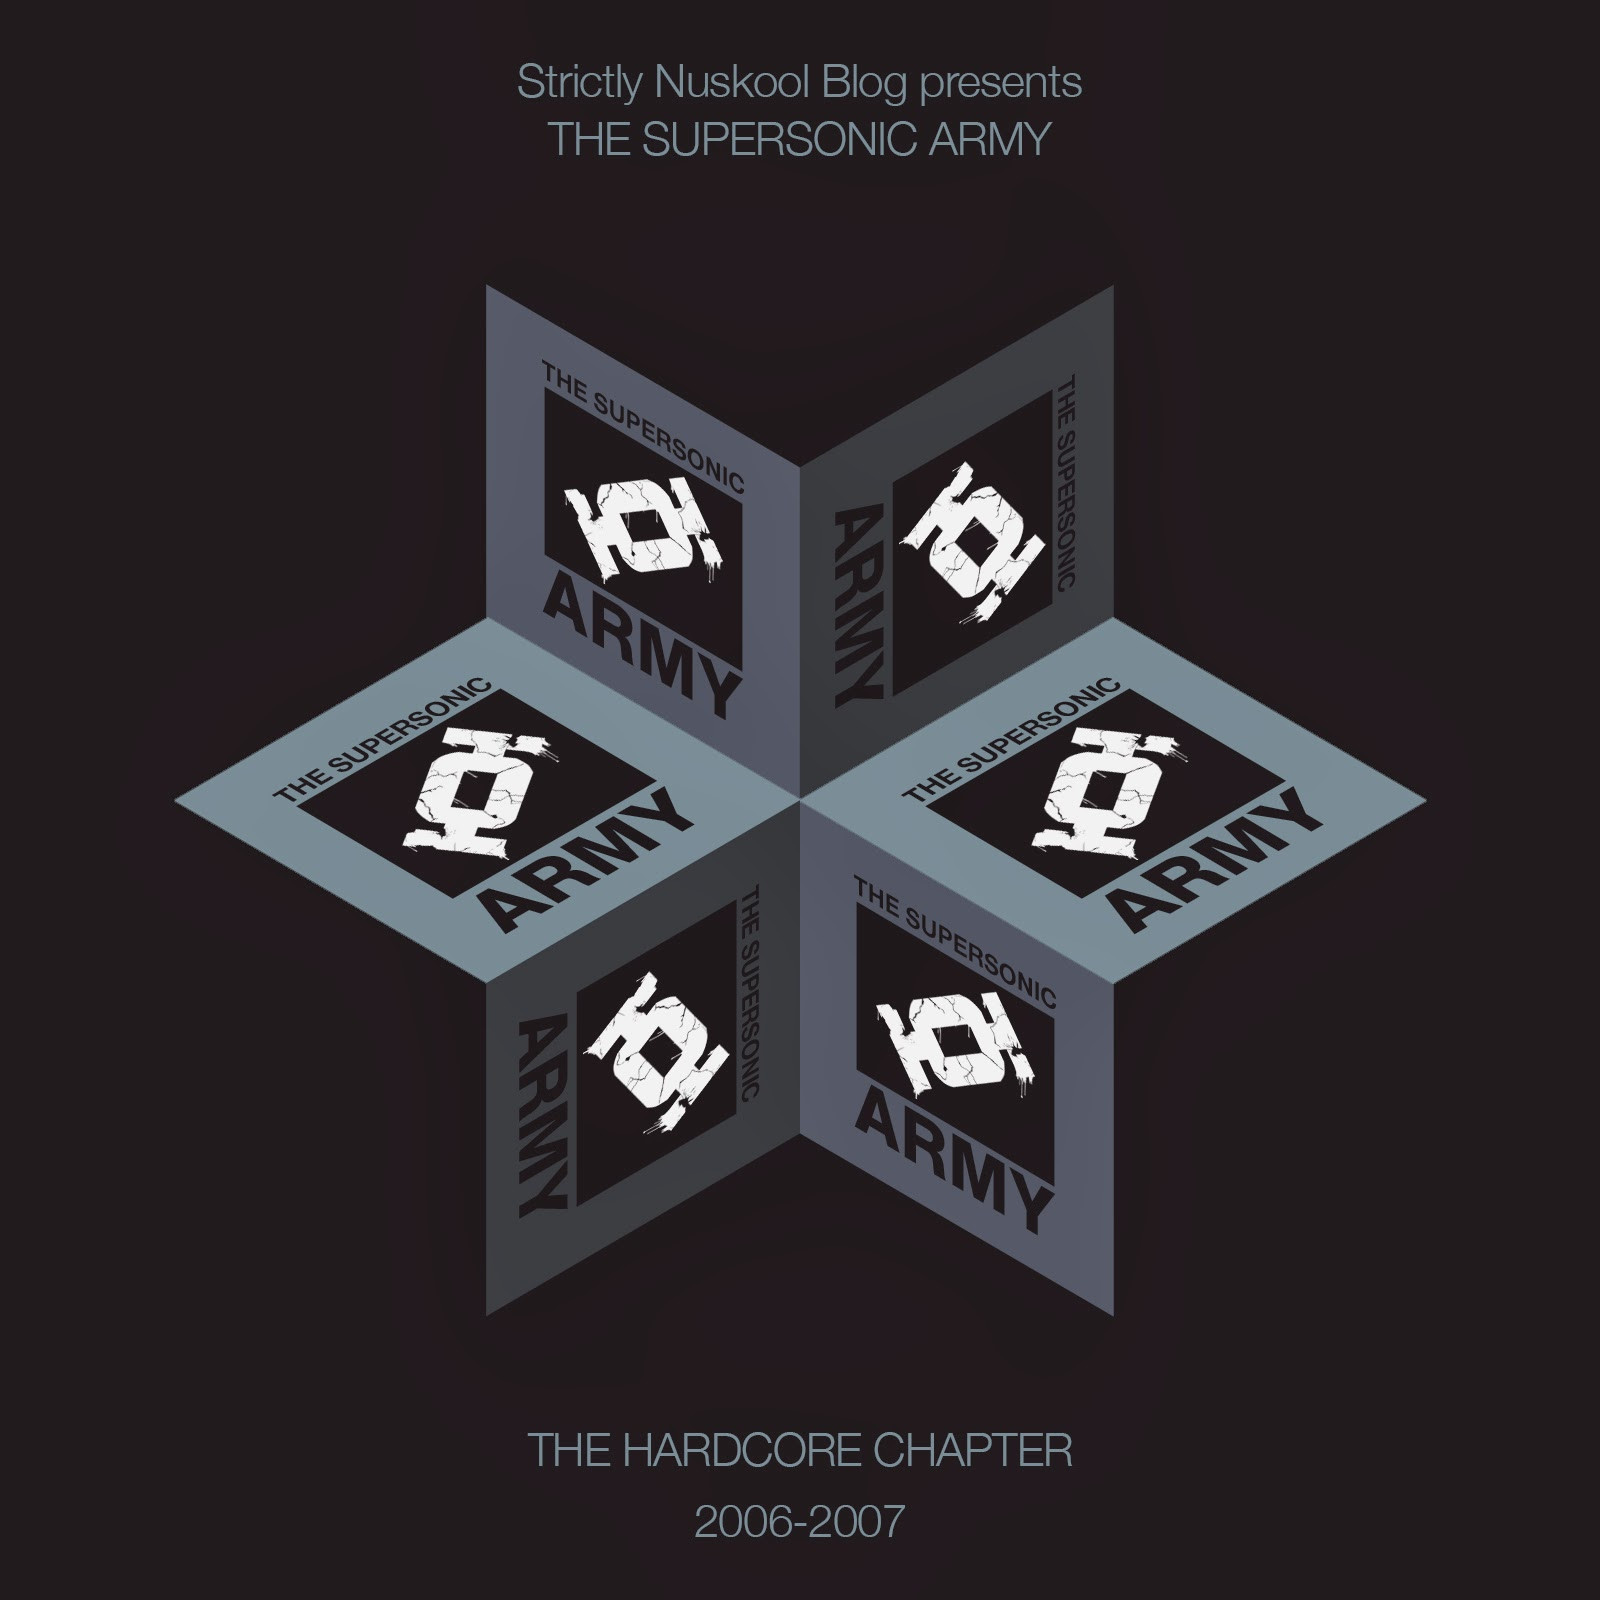 SNBEP006::the supersonic army 'Hardcore chapter 2006-2007' out on